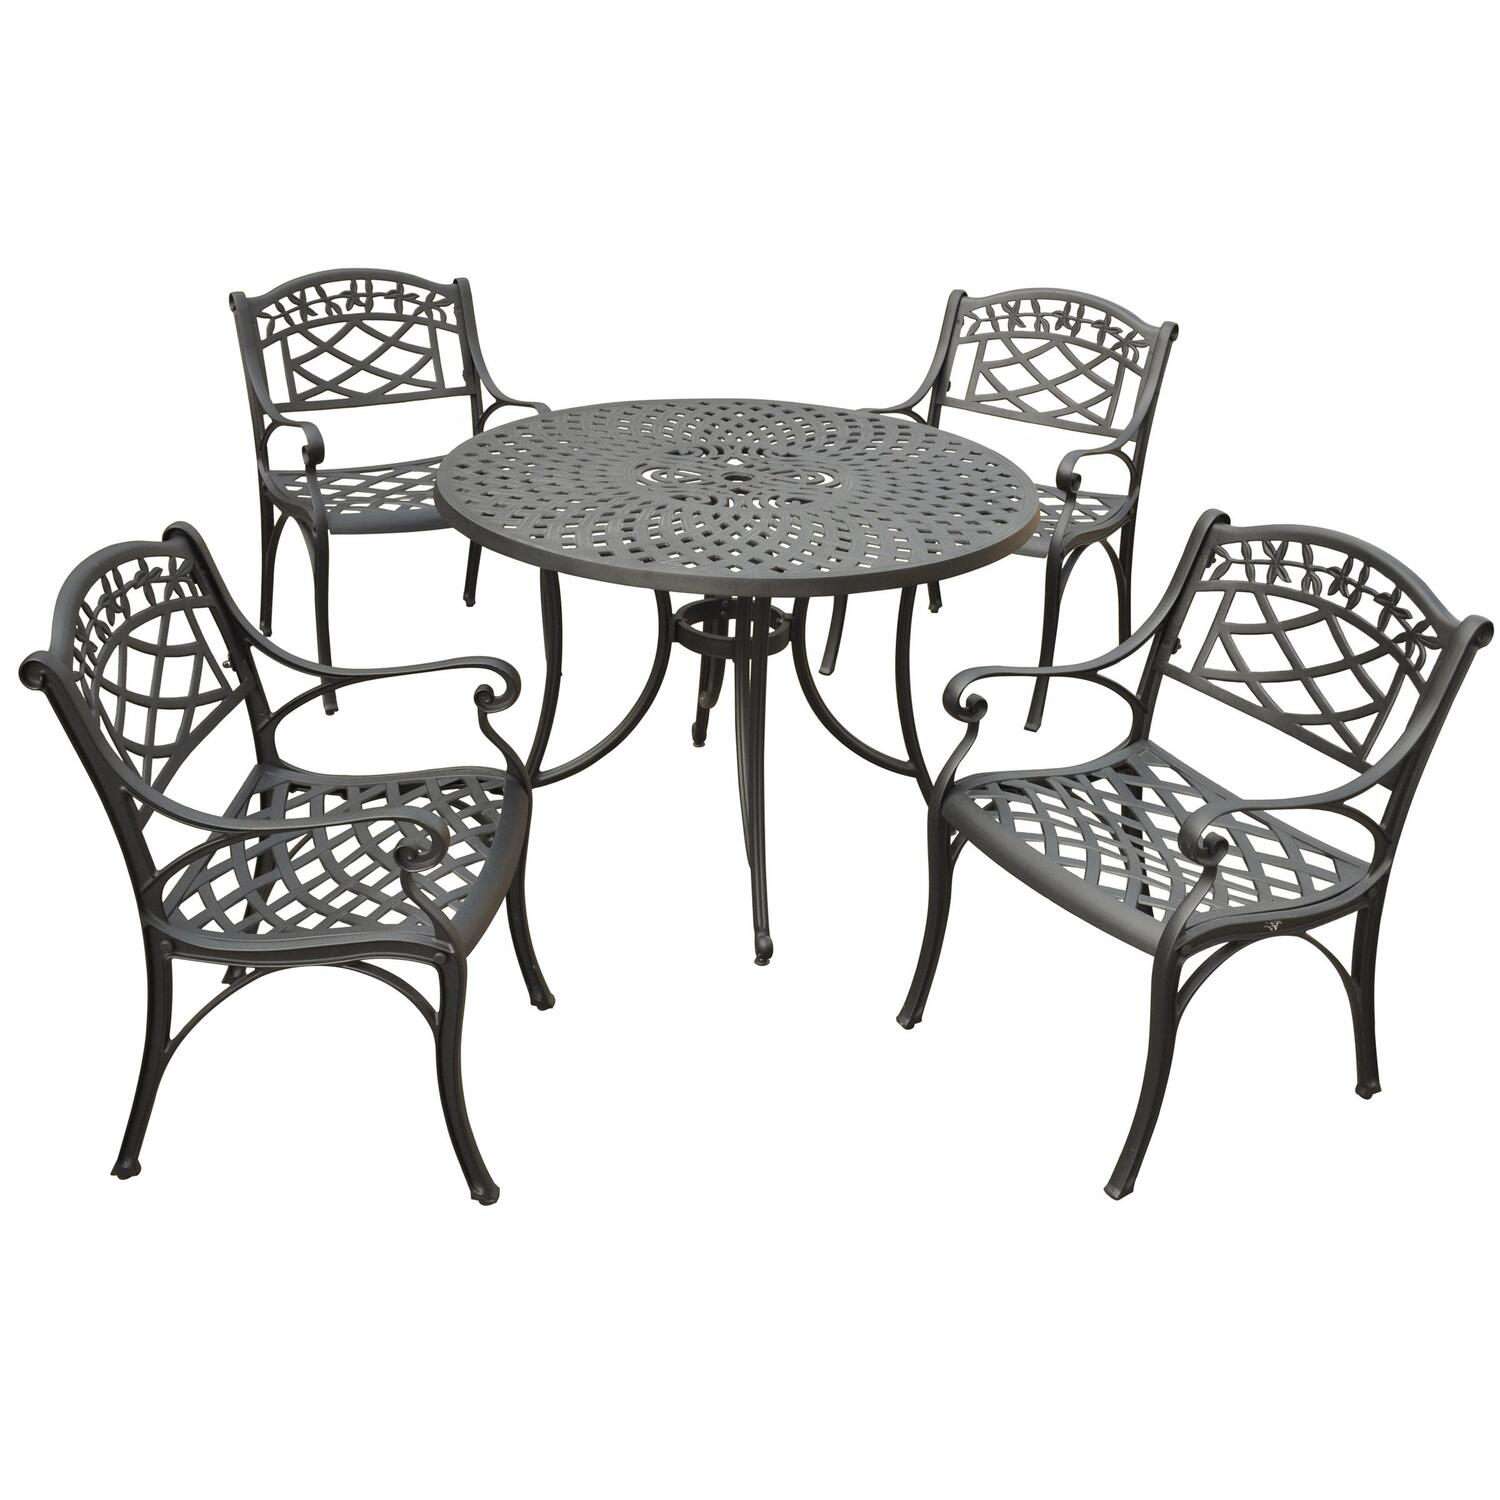 outdoor dining set with arm chairs in black finish by oj commerce